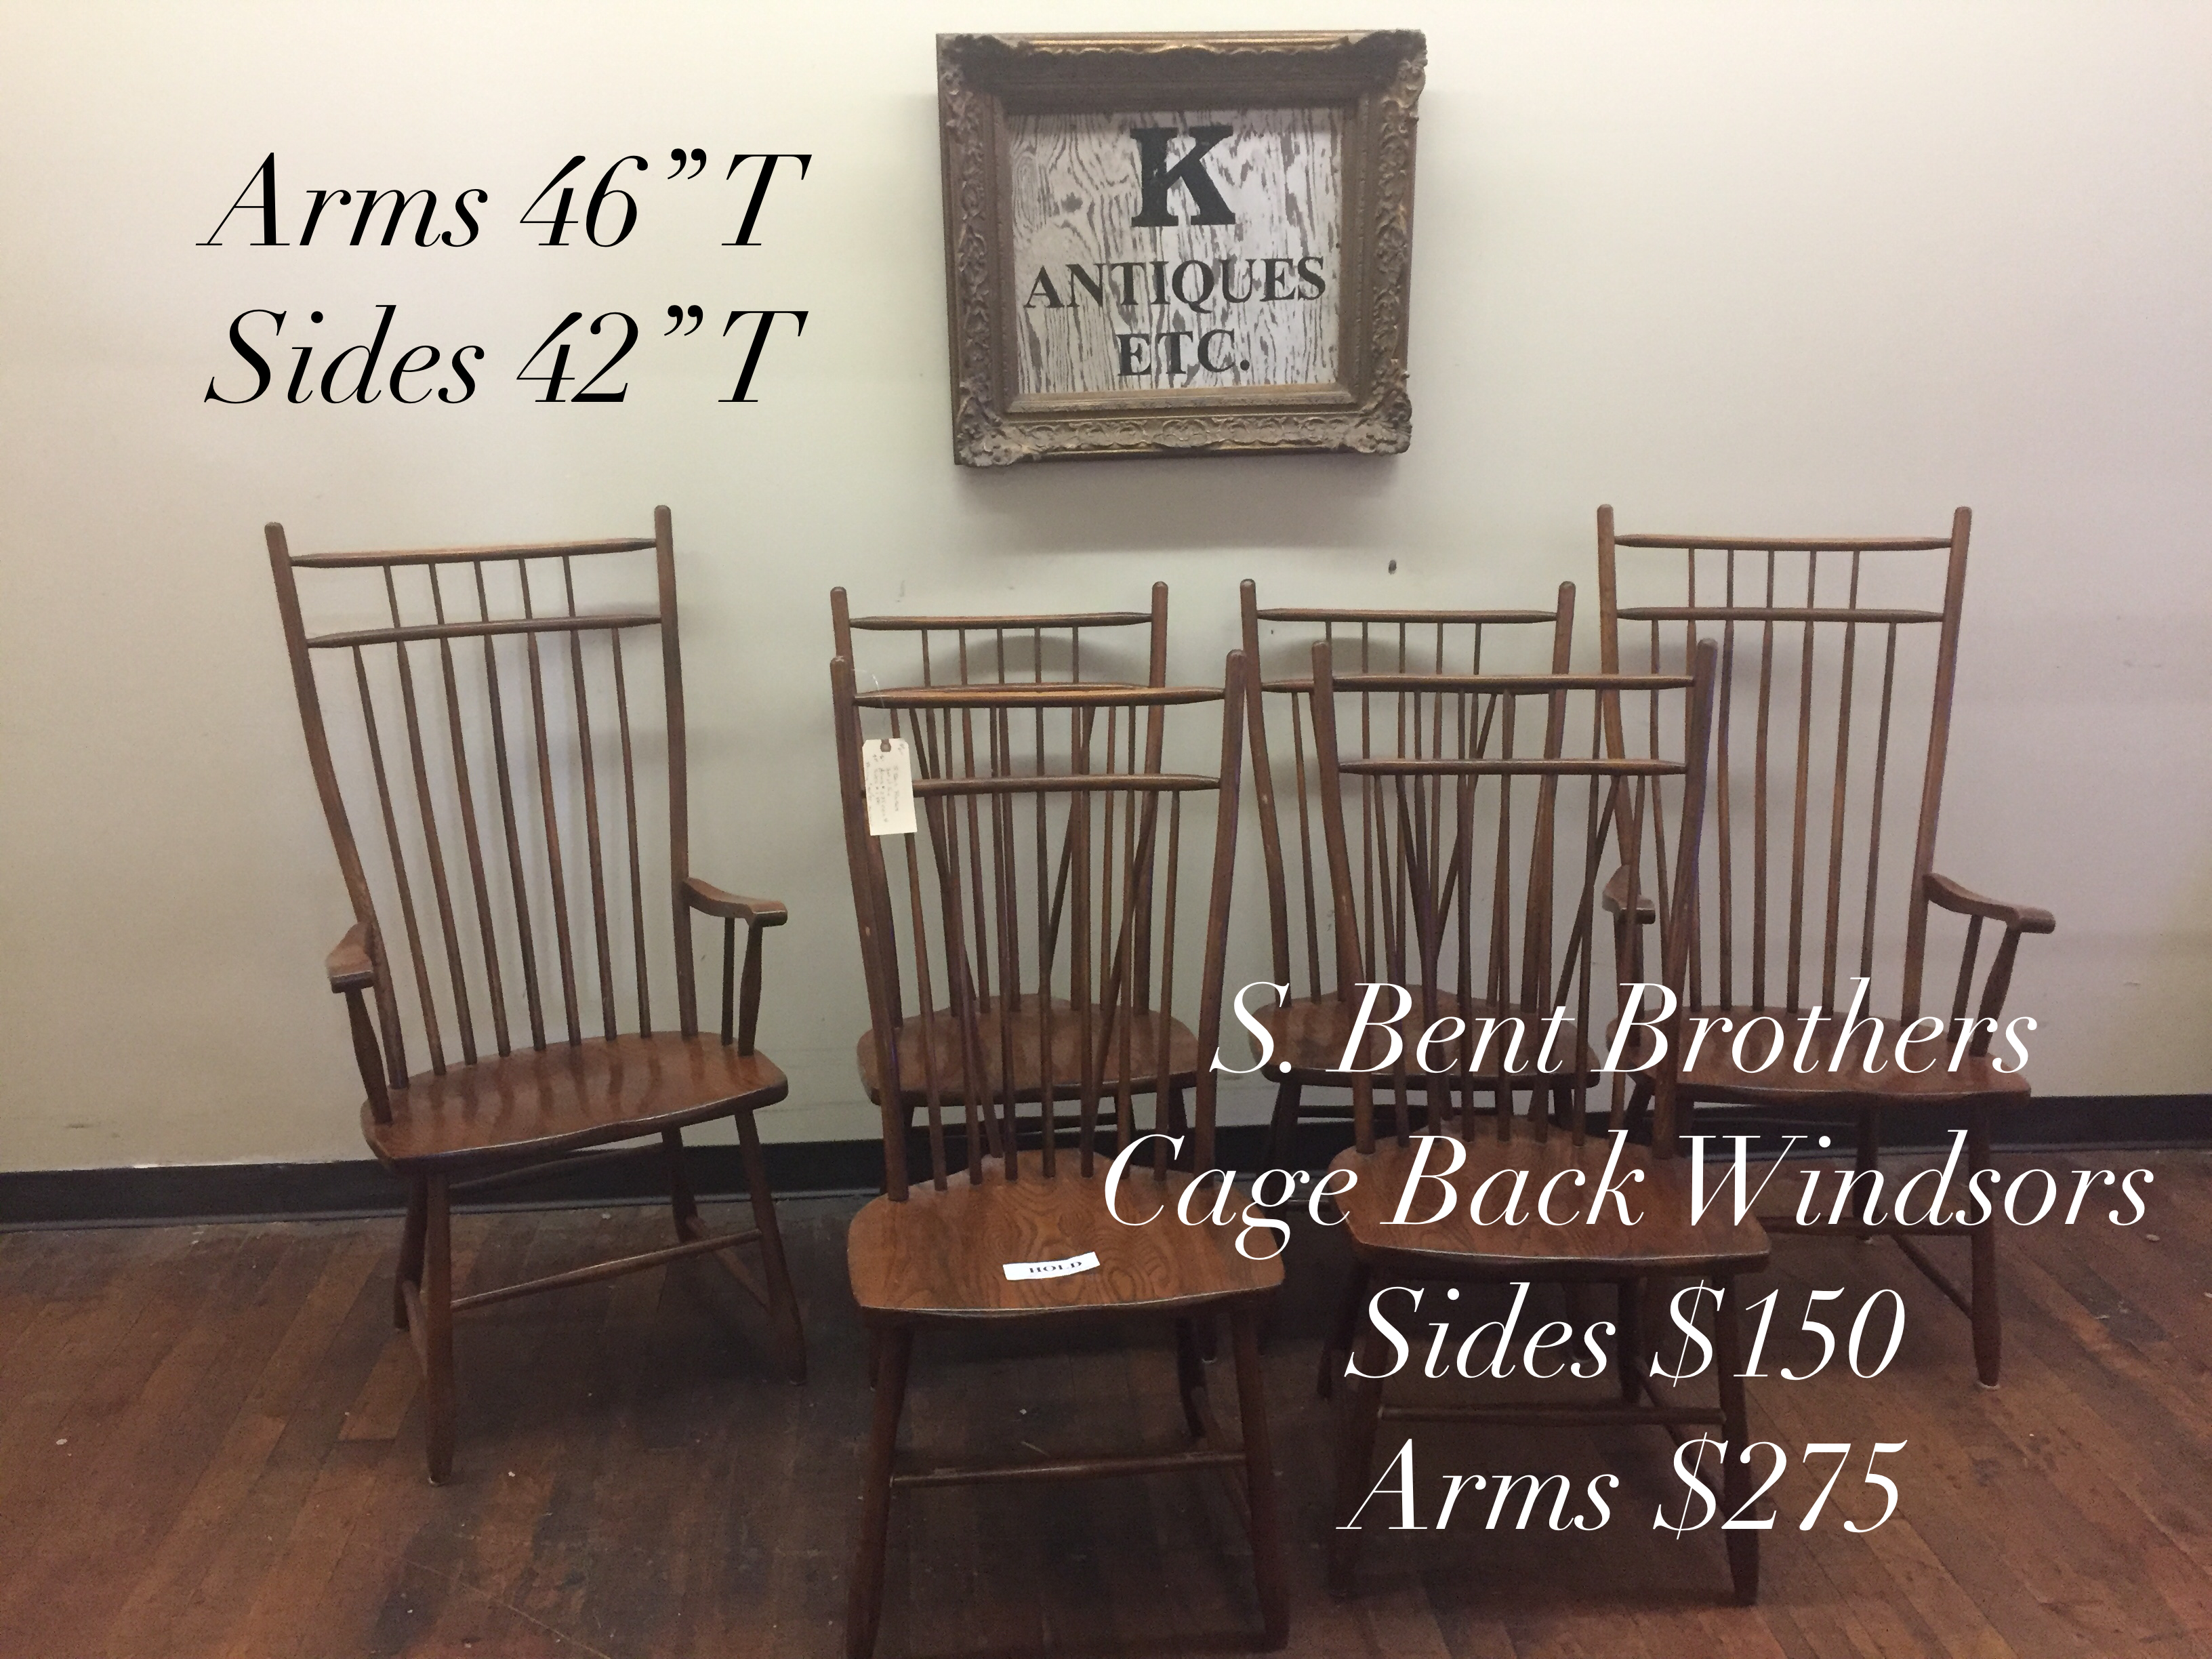 Cage Back Or Bird Windsor Chairs By S Bent Brothers Of Gardner Ma 1867 2000 Extremely Tall And Wide Available From K Antiques Etc Specializing In